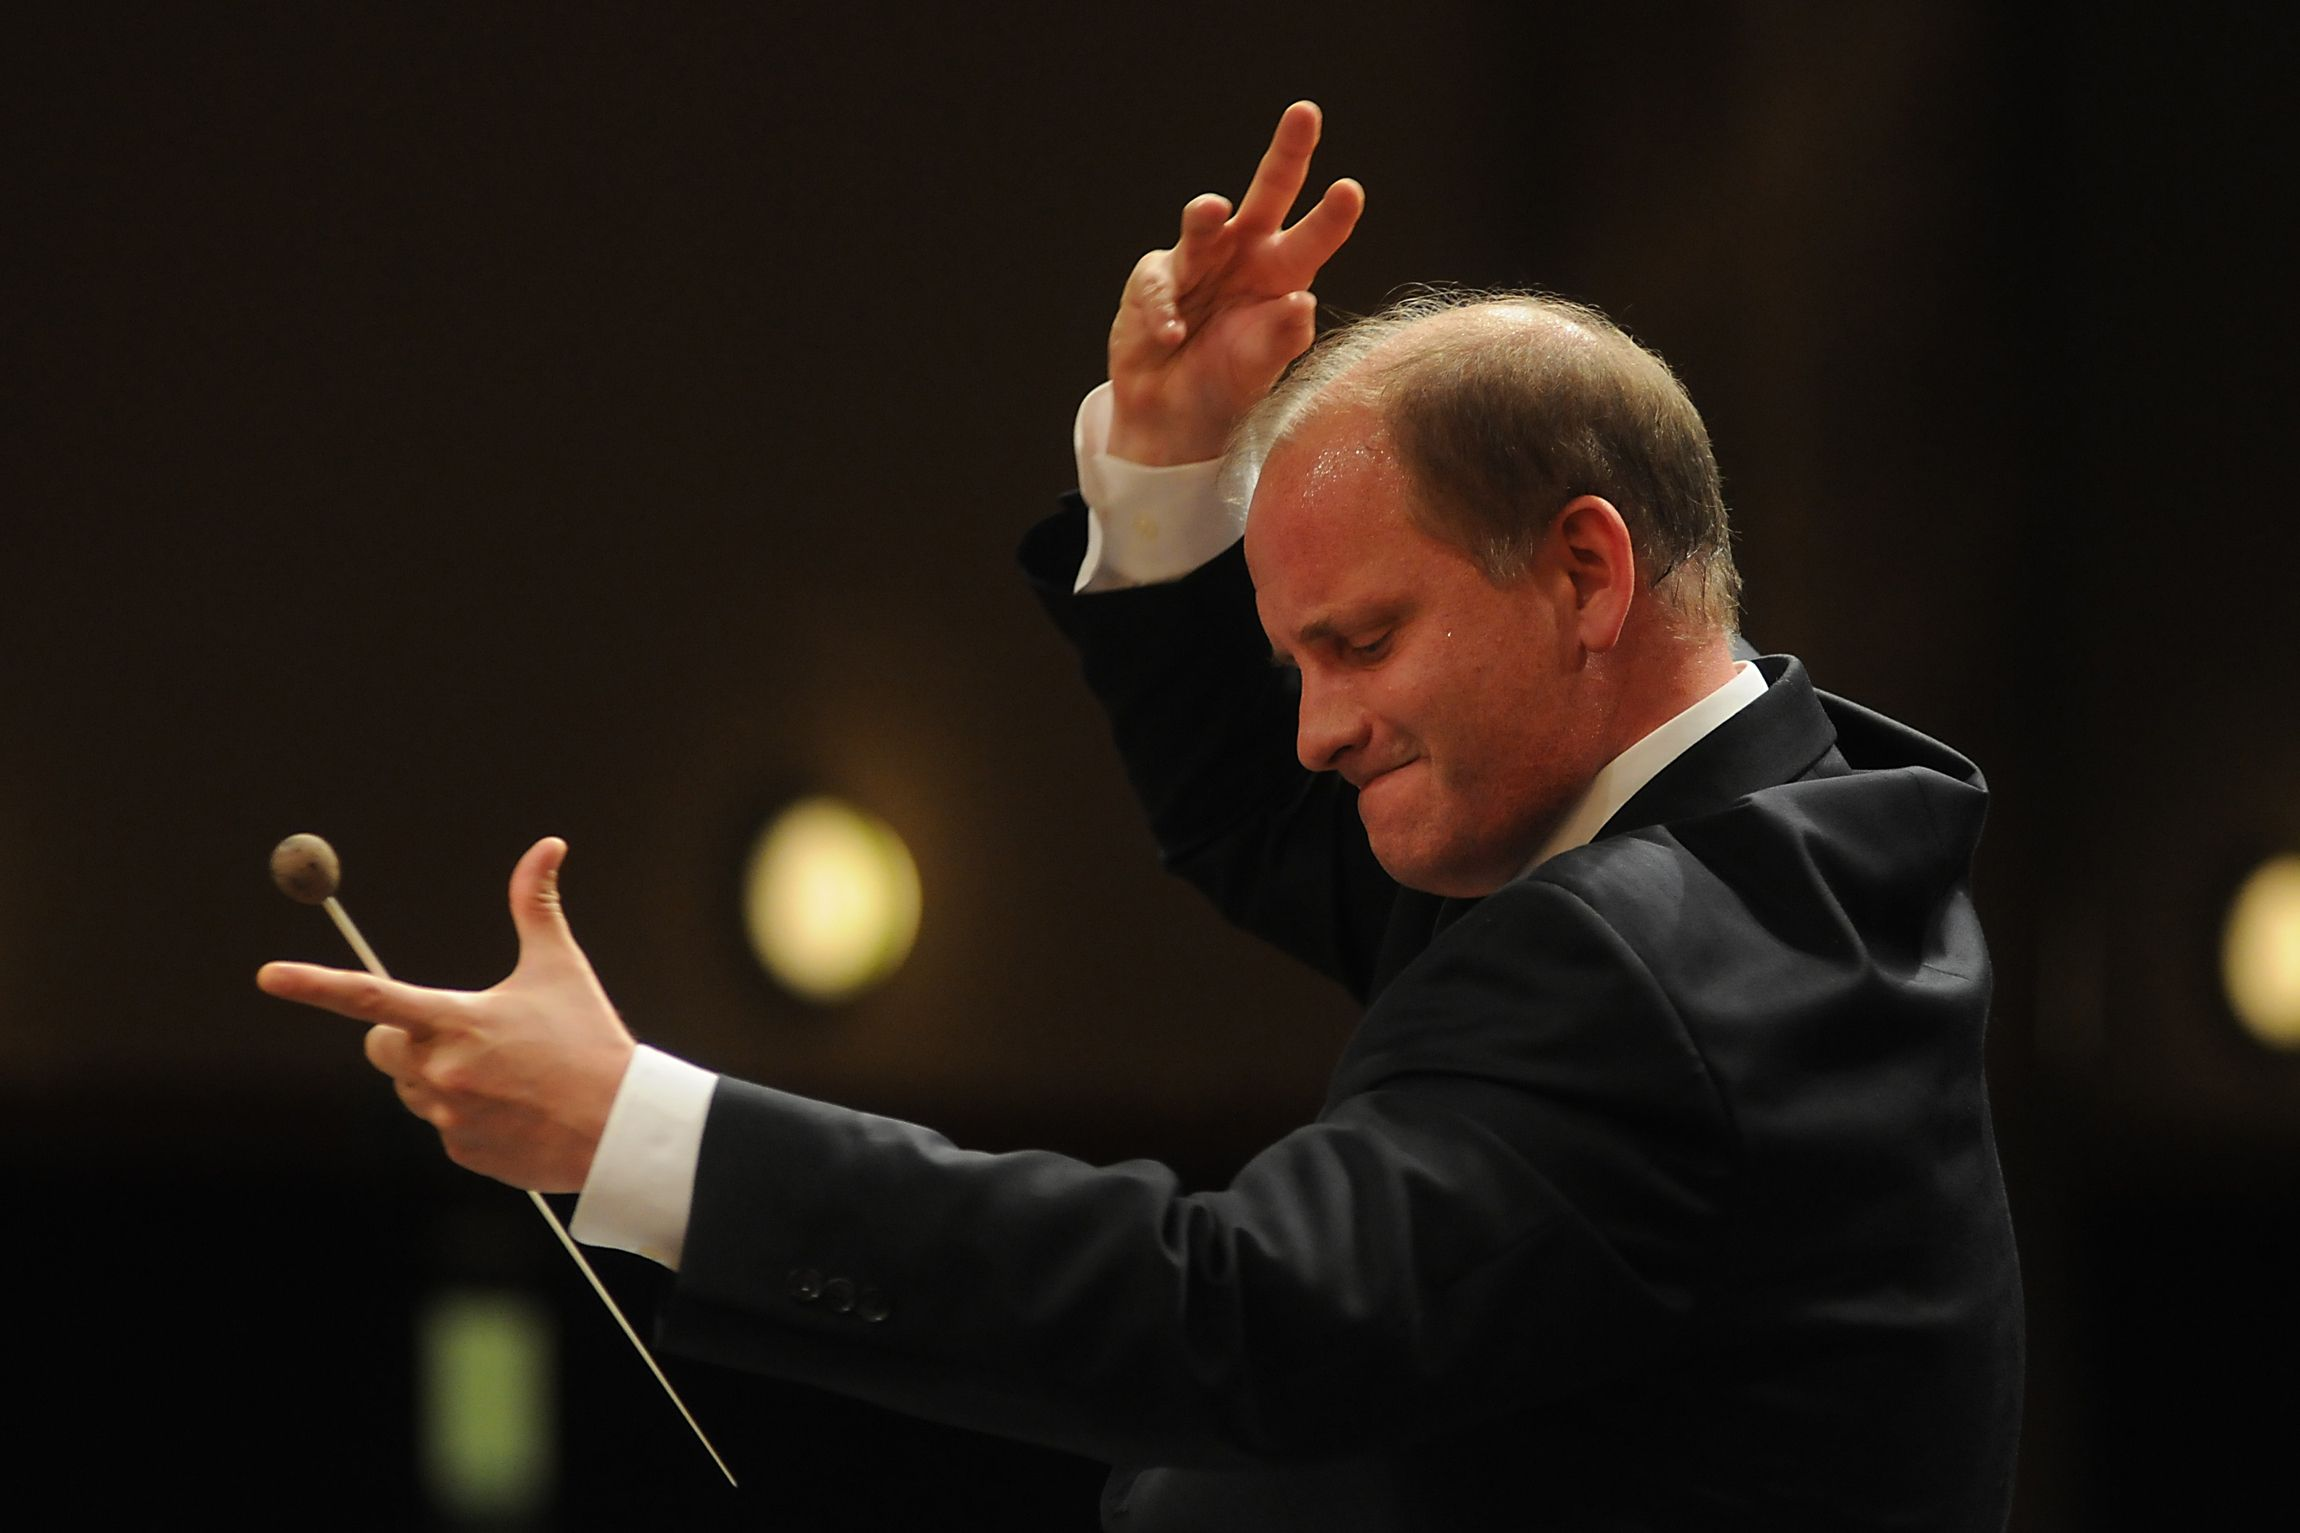 The Fresno Philharmonic kicks off its 62nd season with the amazing cellist Lynn Harrell performing two concertos with Maestro Theodore Kuchar!  DATES: Sunday, Sep 27, 2015 * 3:00 PM William Saroyan Theatre Theodore Kuchar, conductor Lynn Harrell, cello  MUSIC: Shostakovich Suite for Jazz Orchestra No. 2 Schumann  Cello Concerto Bloch  Schelomo R Strauss  Suite from Der Rosenkavalier